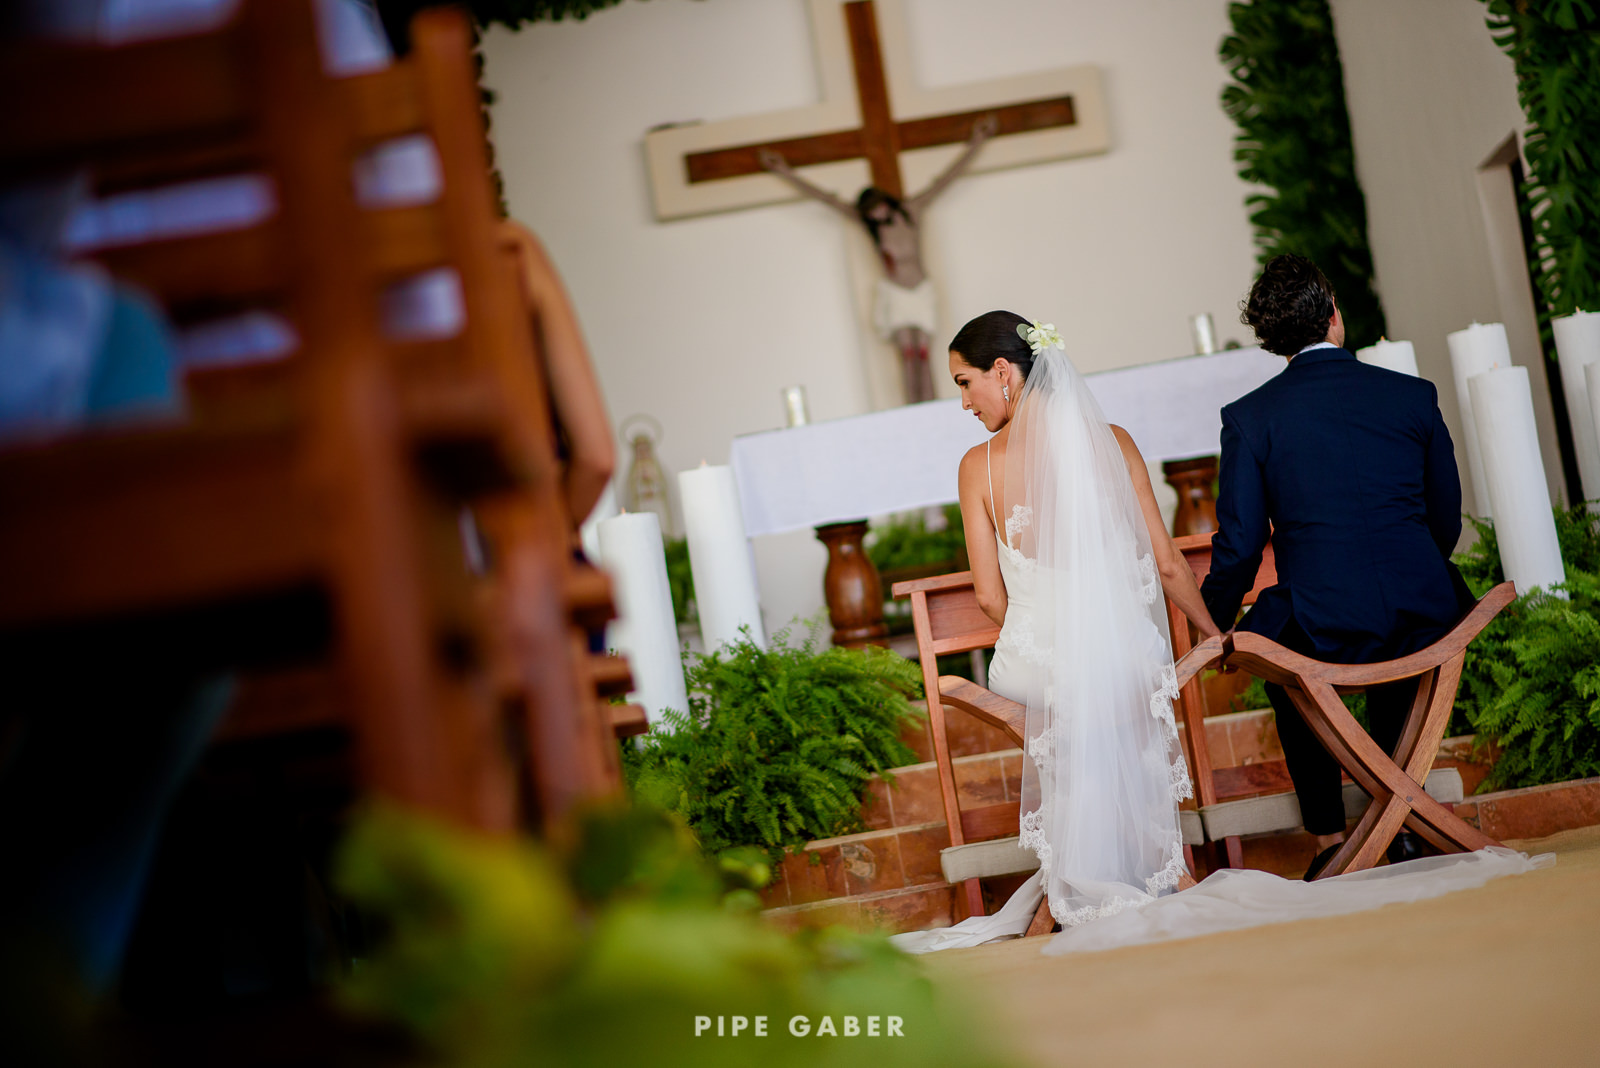 Wedding_phographer_Yucatan_beach_13.JPG